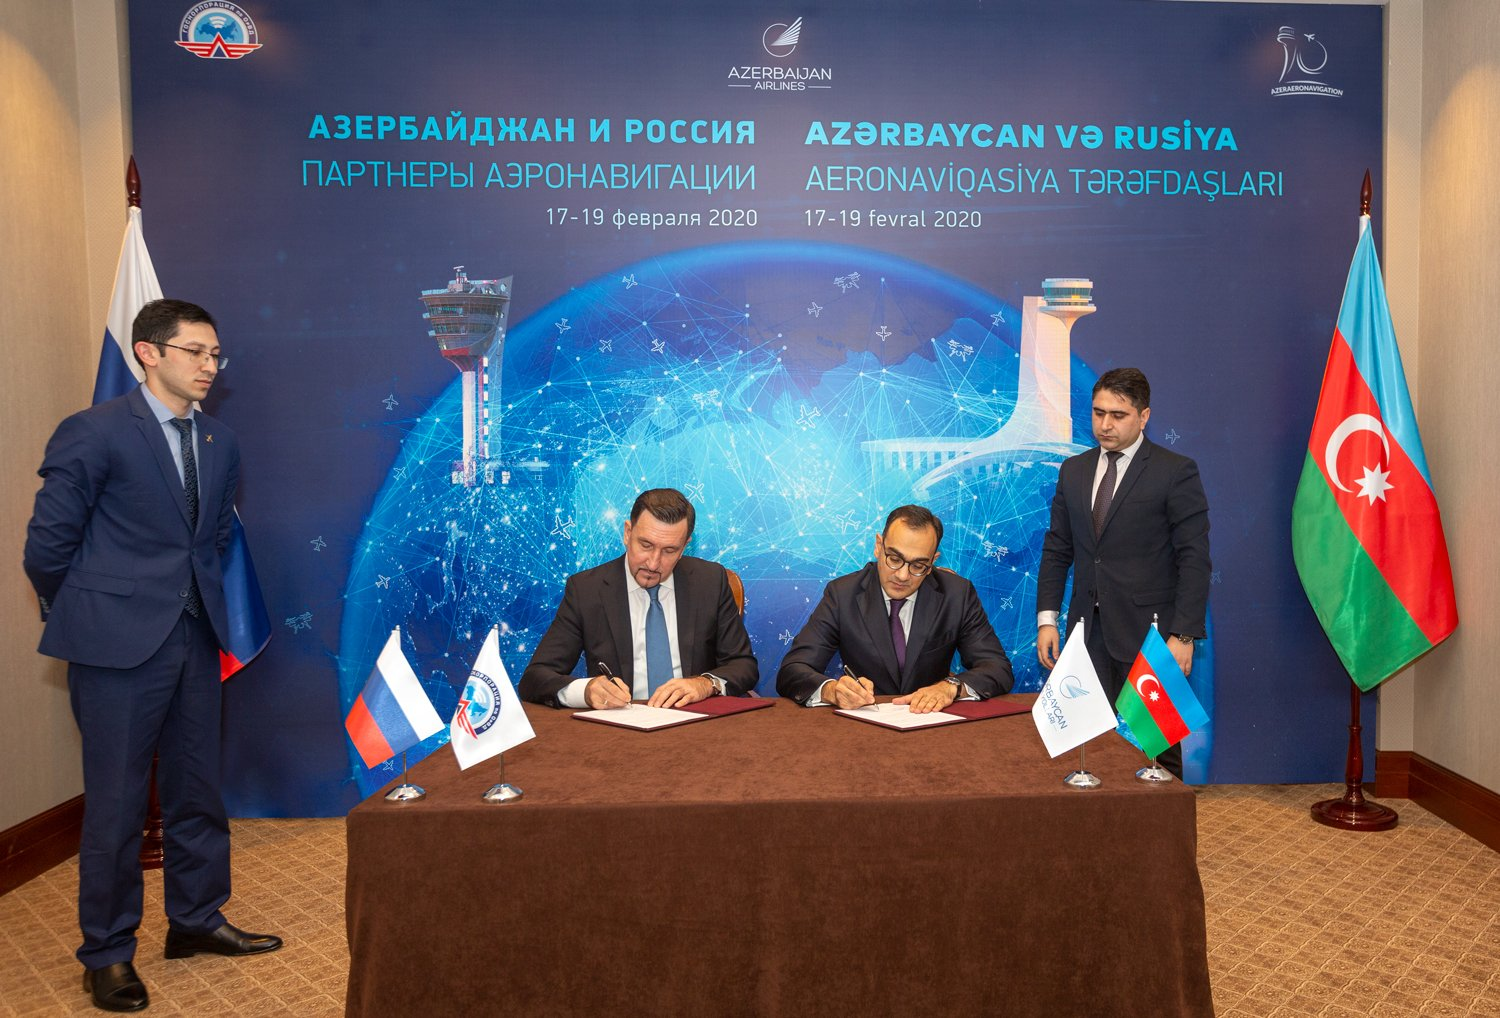 Azerbaijan and Russia to strengthen cooperation in ensuring flight safety